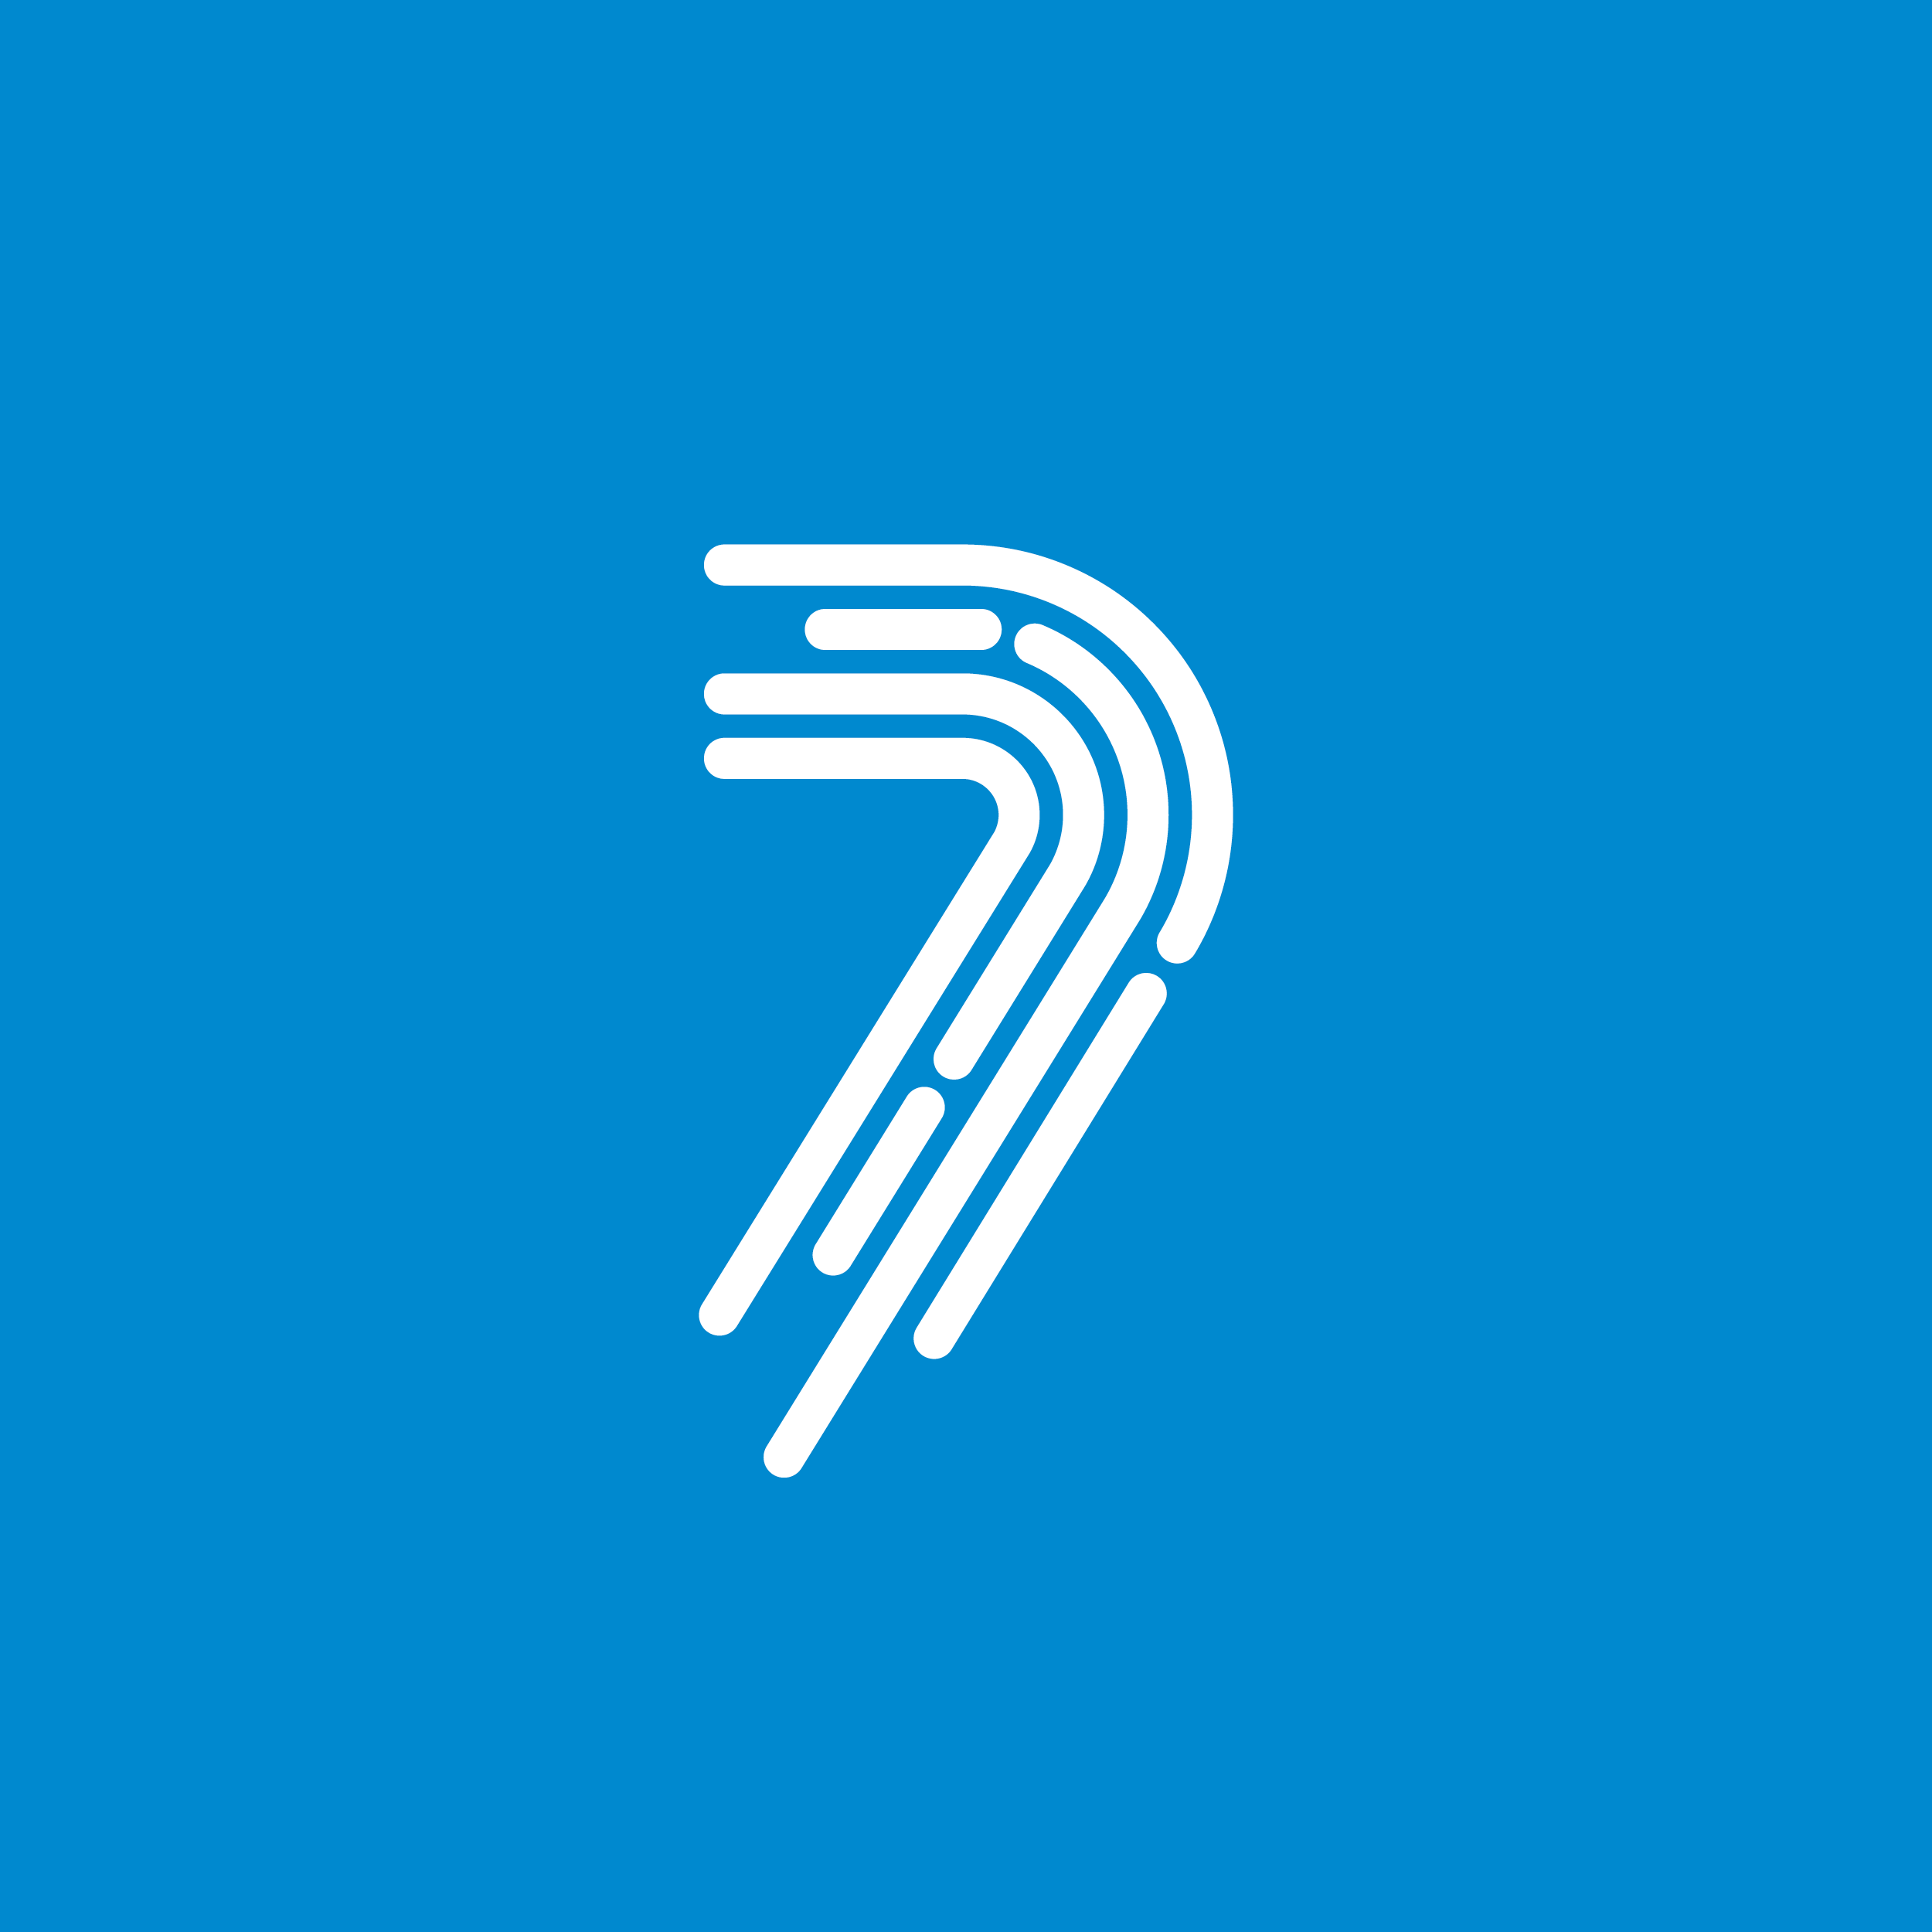 Brand Identity Creation and Design of Applications for The 7 Toolkit by Reef+Co